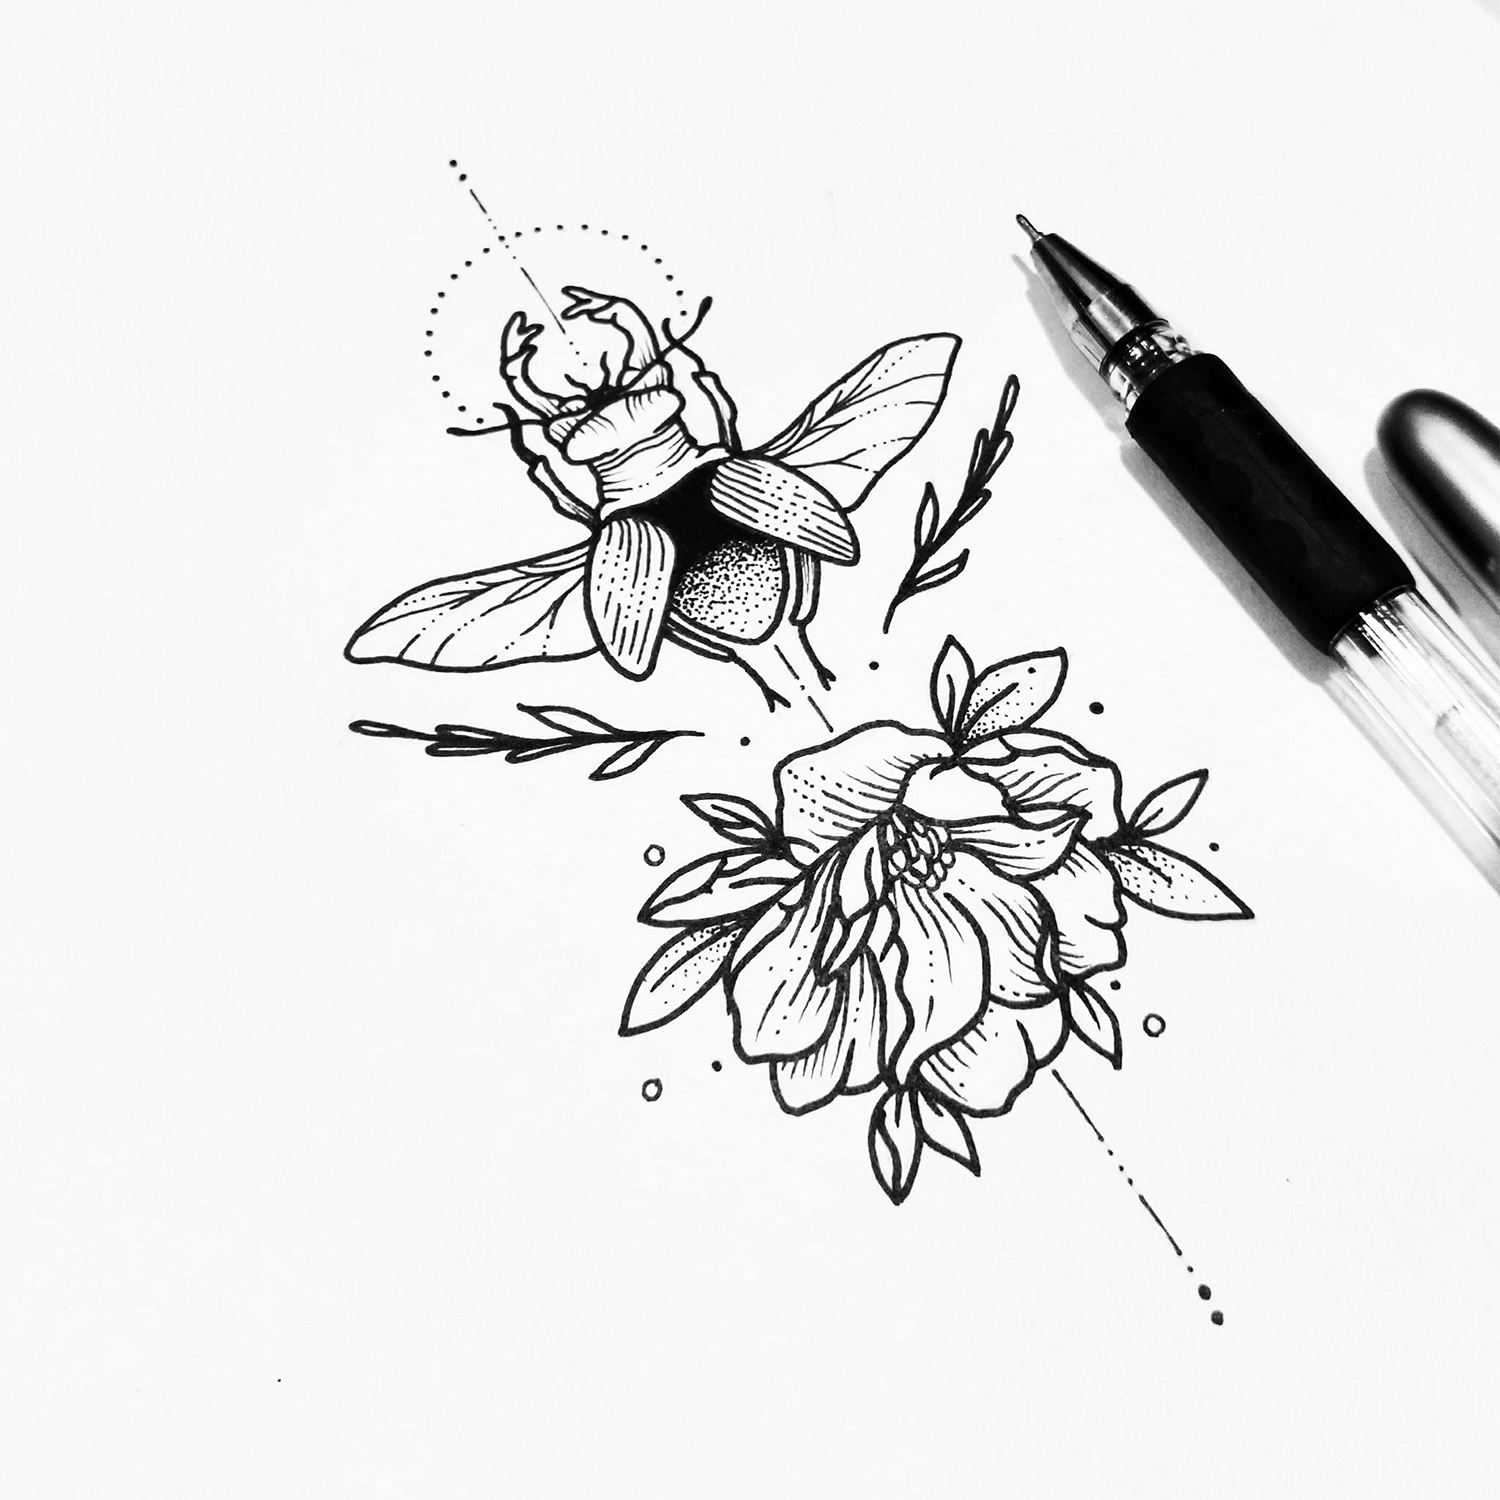 flower and insect drawing, black pen